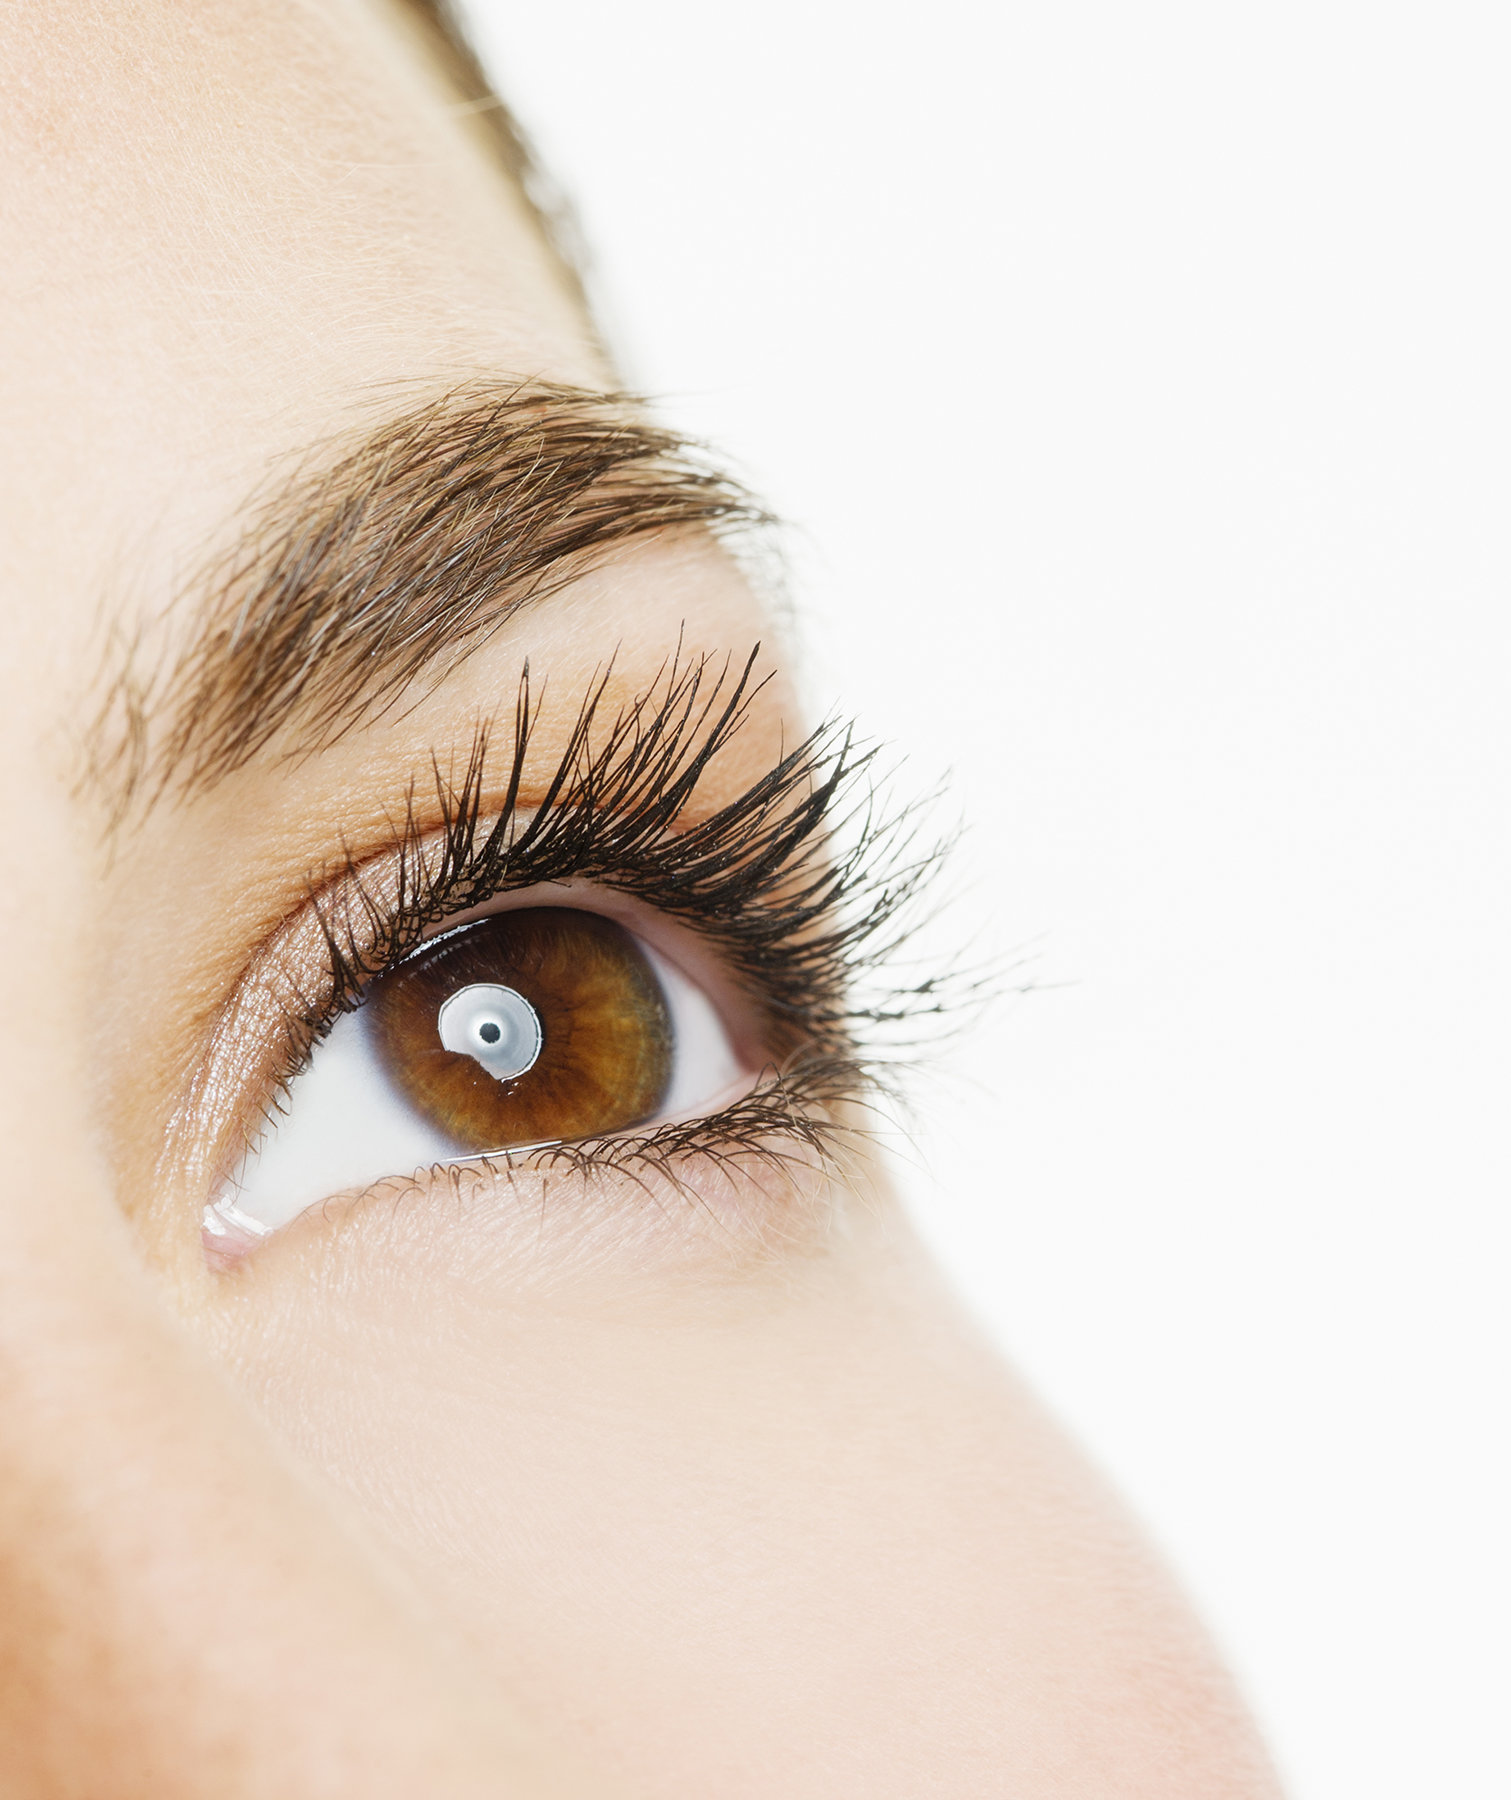 woman-eye-close-up